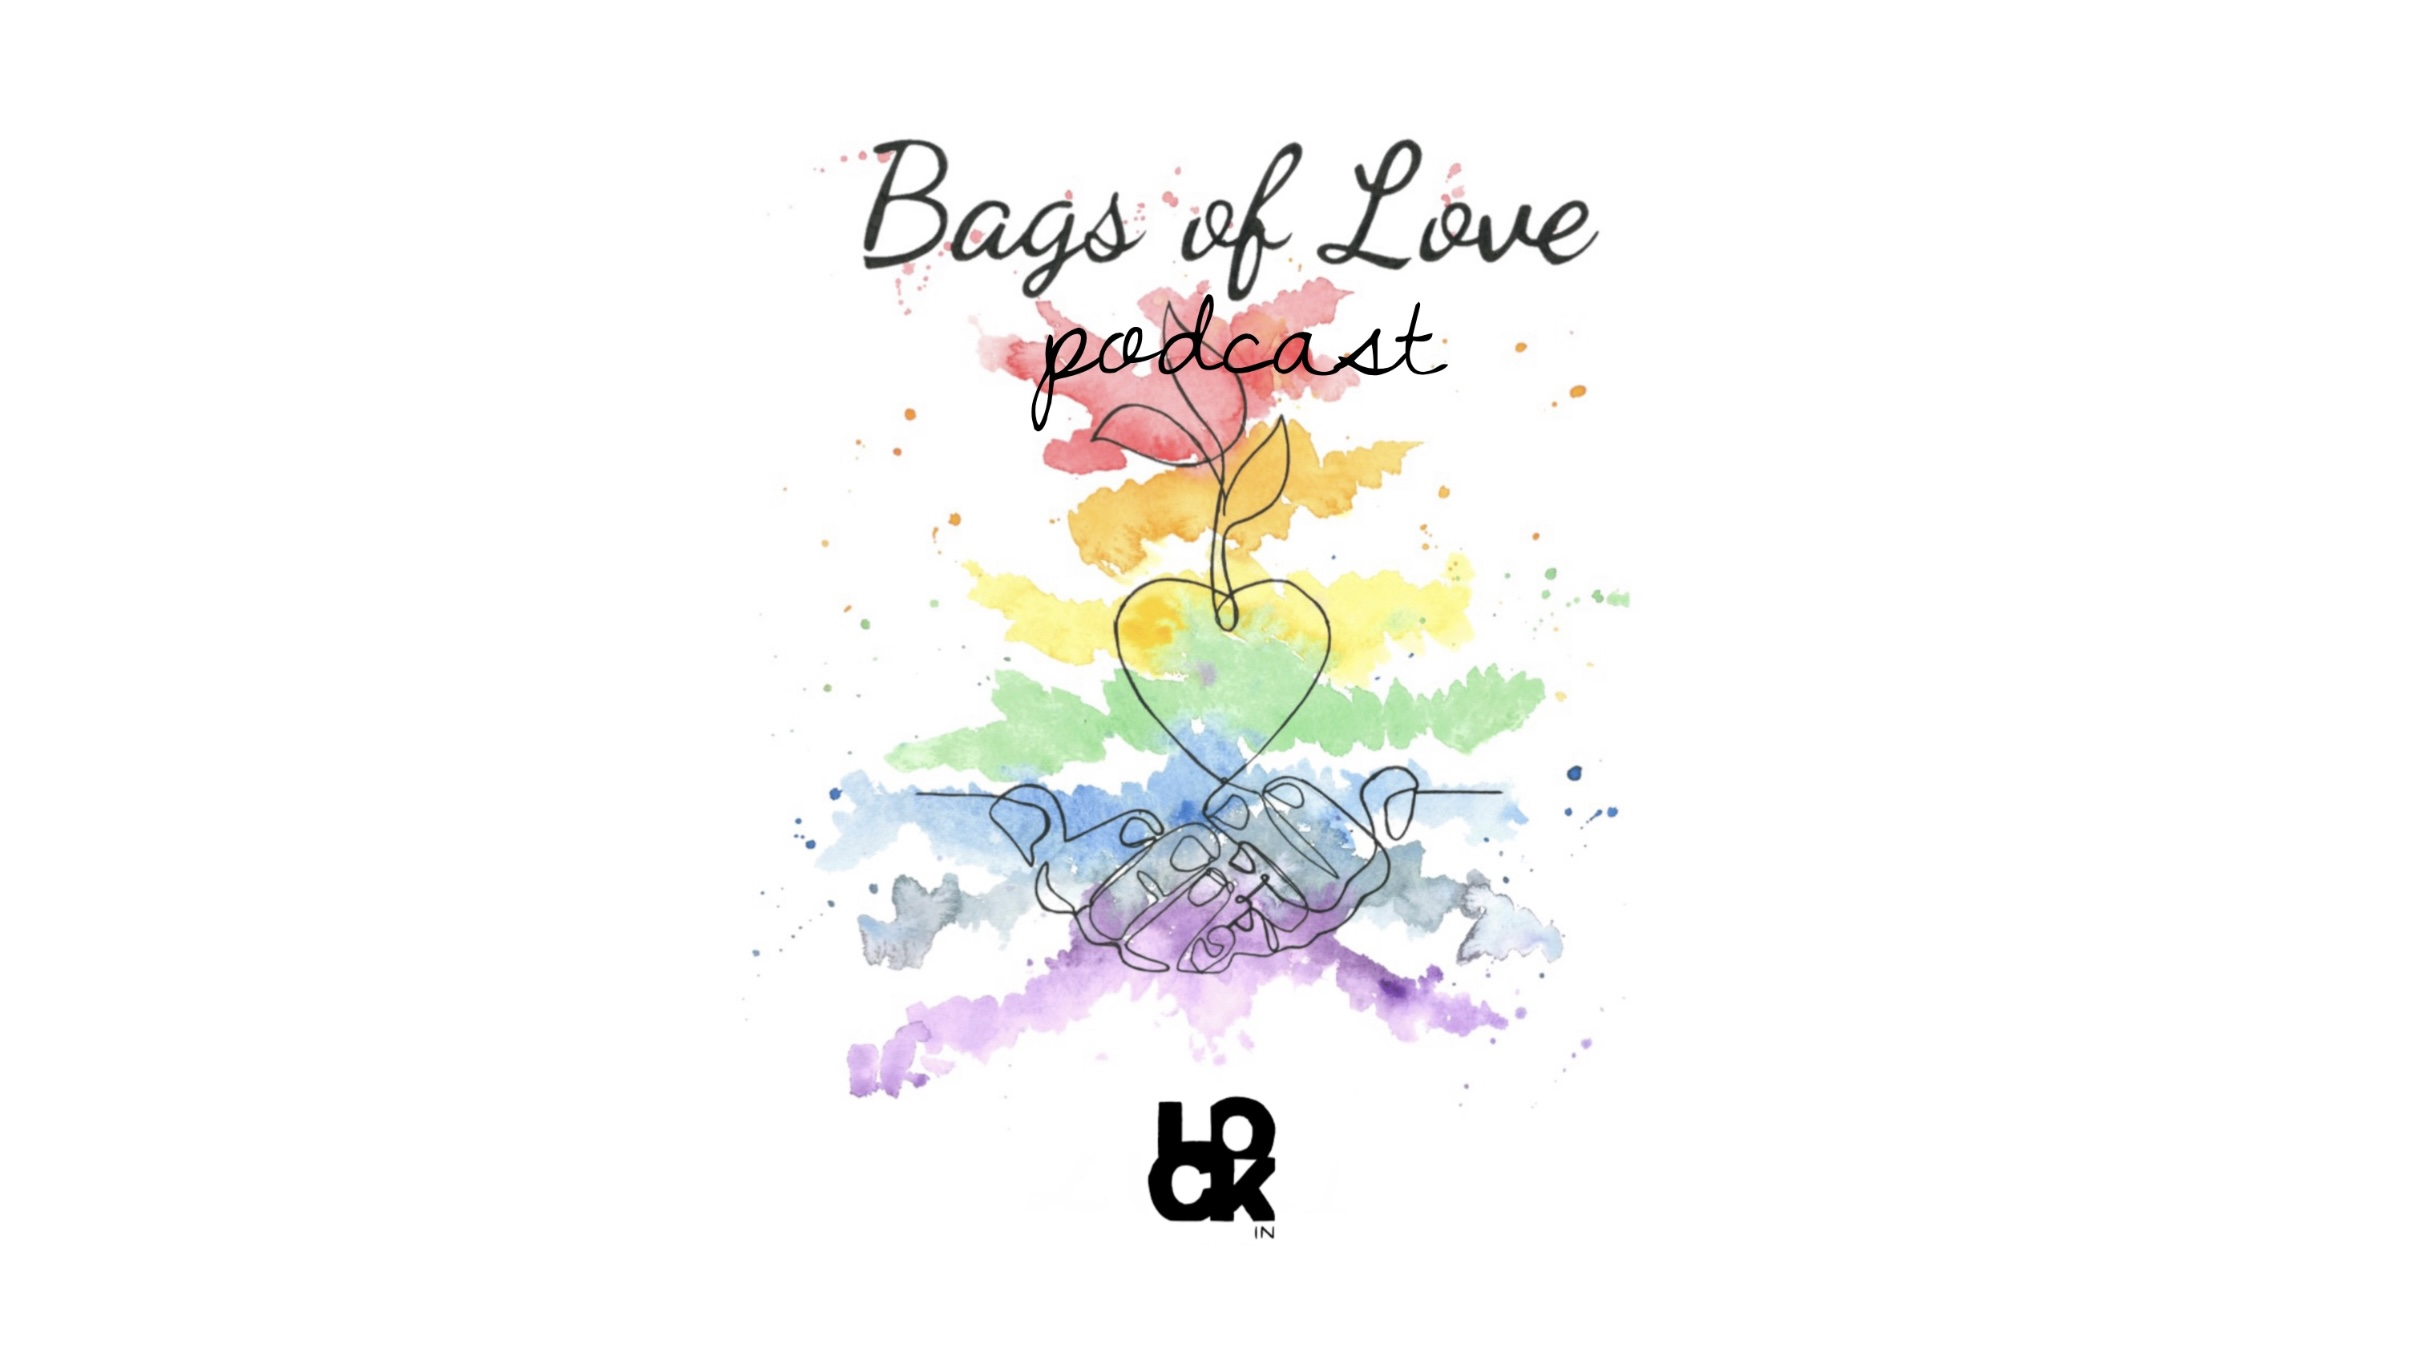 Bags Of Love podcast October 2021